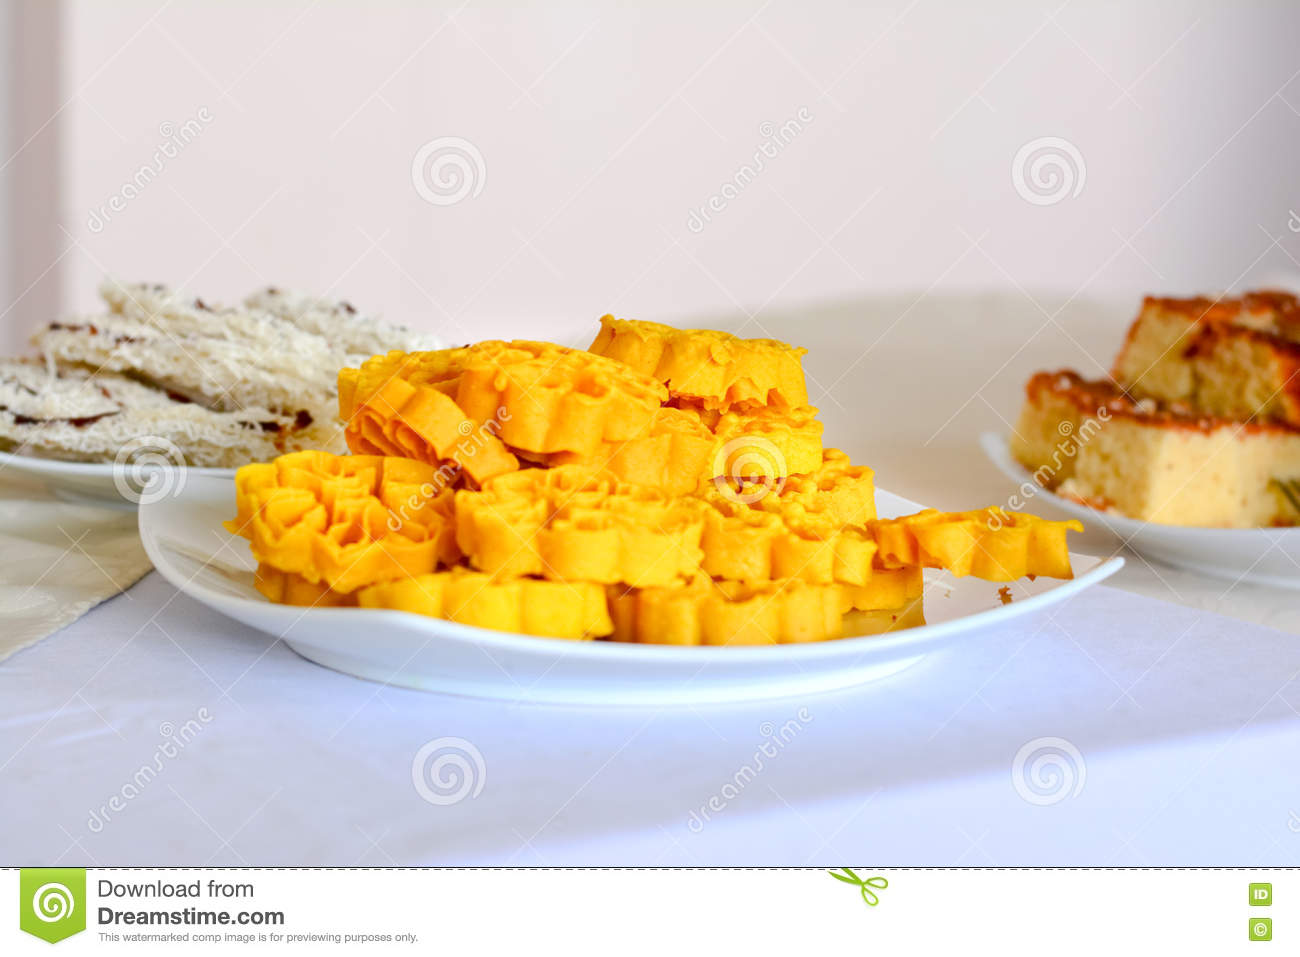 Sinhala stock photos 287 images traditional sri lankan sinhala and tamil new year sweets according to sri lankan custom ccuart Gallery